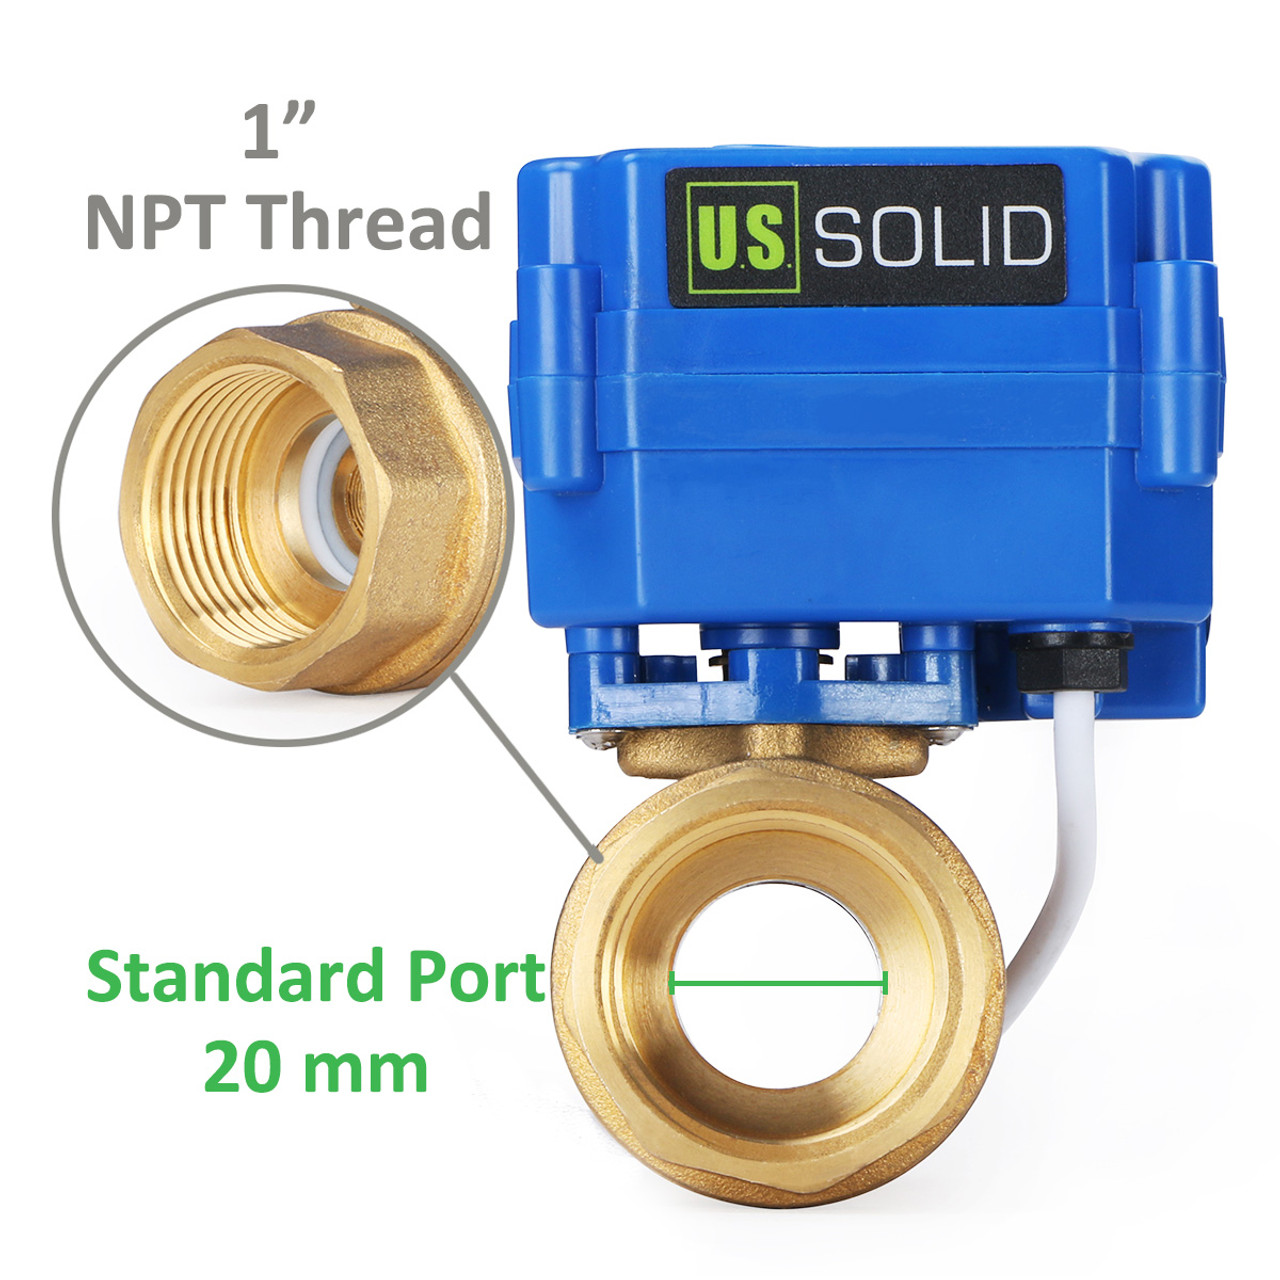 """U.S. Solid Motorized Ball Valve- 1"""" Brass Electrical Ball Valve with Standard Port, 9-24 V AC/DC, 2 Wire Auto Return, Normally Open"""